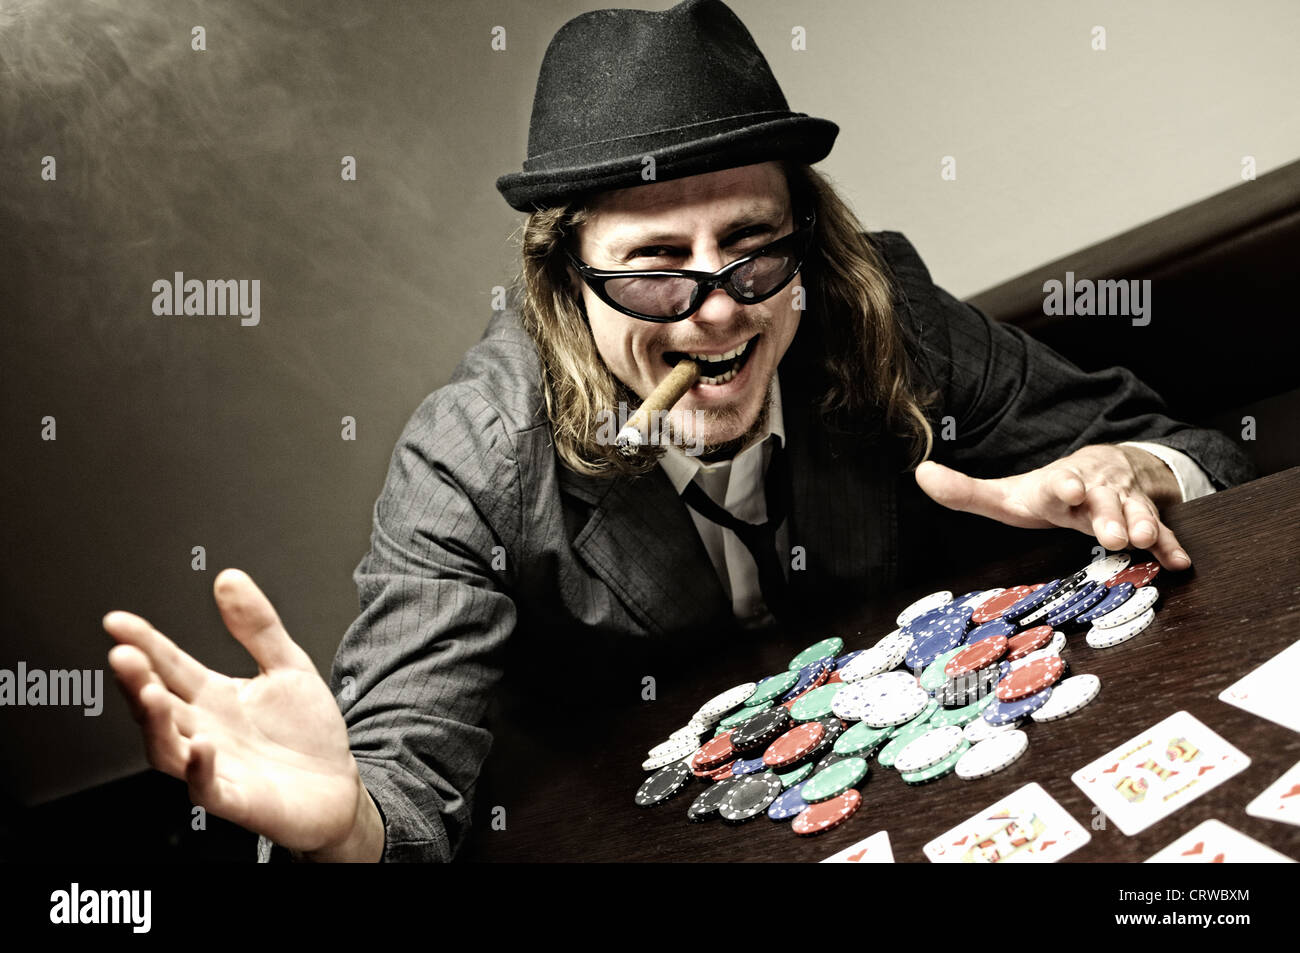 Poker Gambler - Stock Image